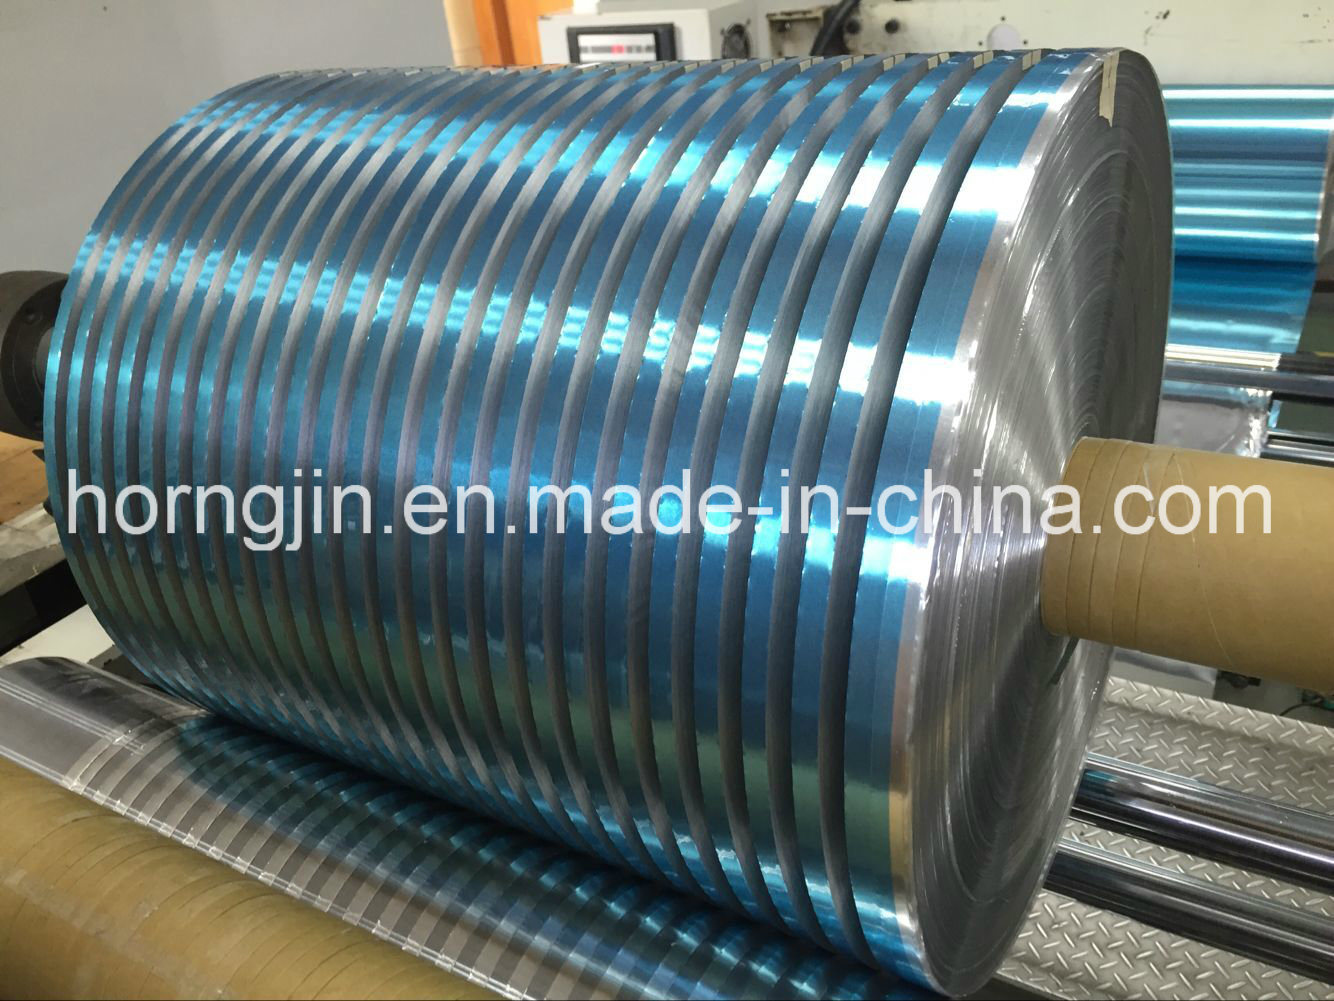 Laminated Coating Film Polyester Tape Aluminum Foil Shielding Material